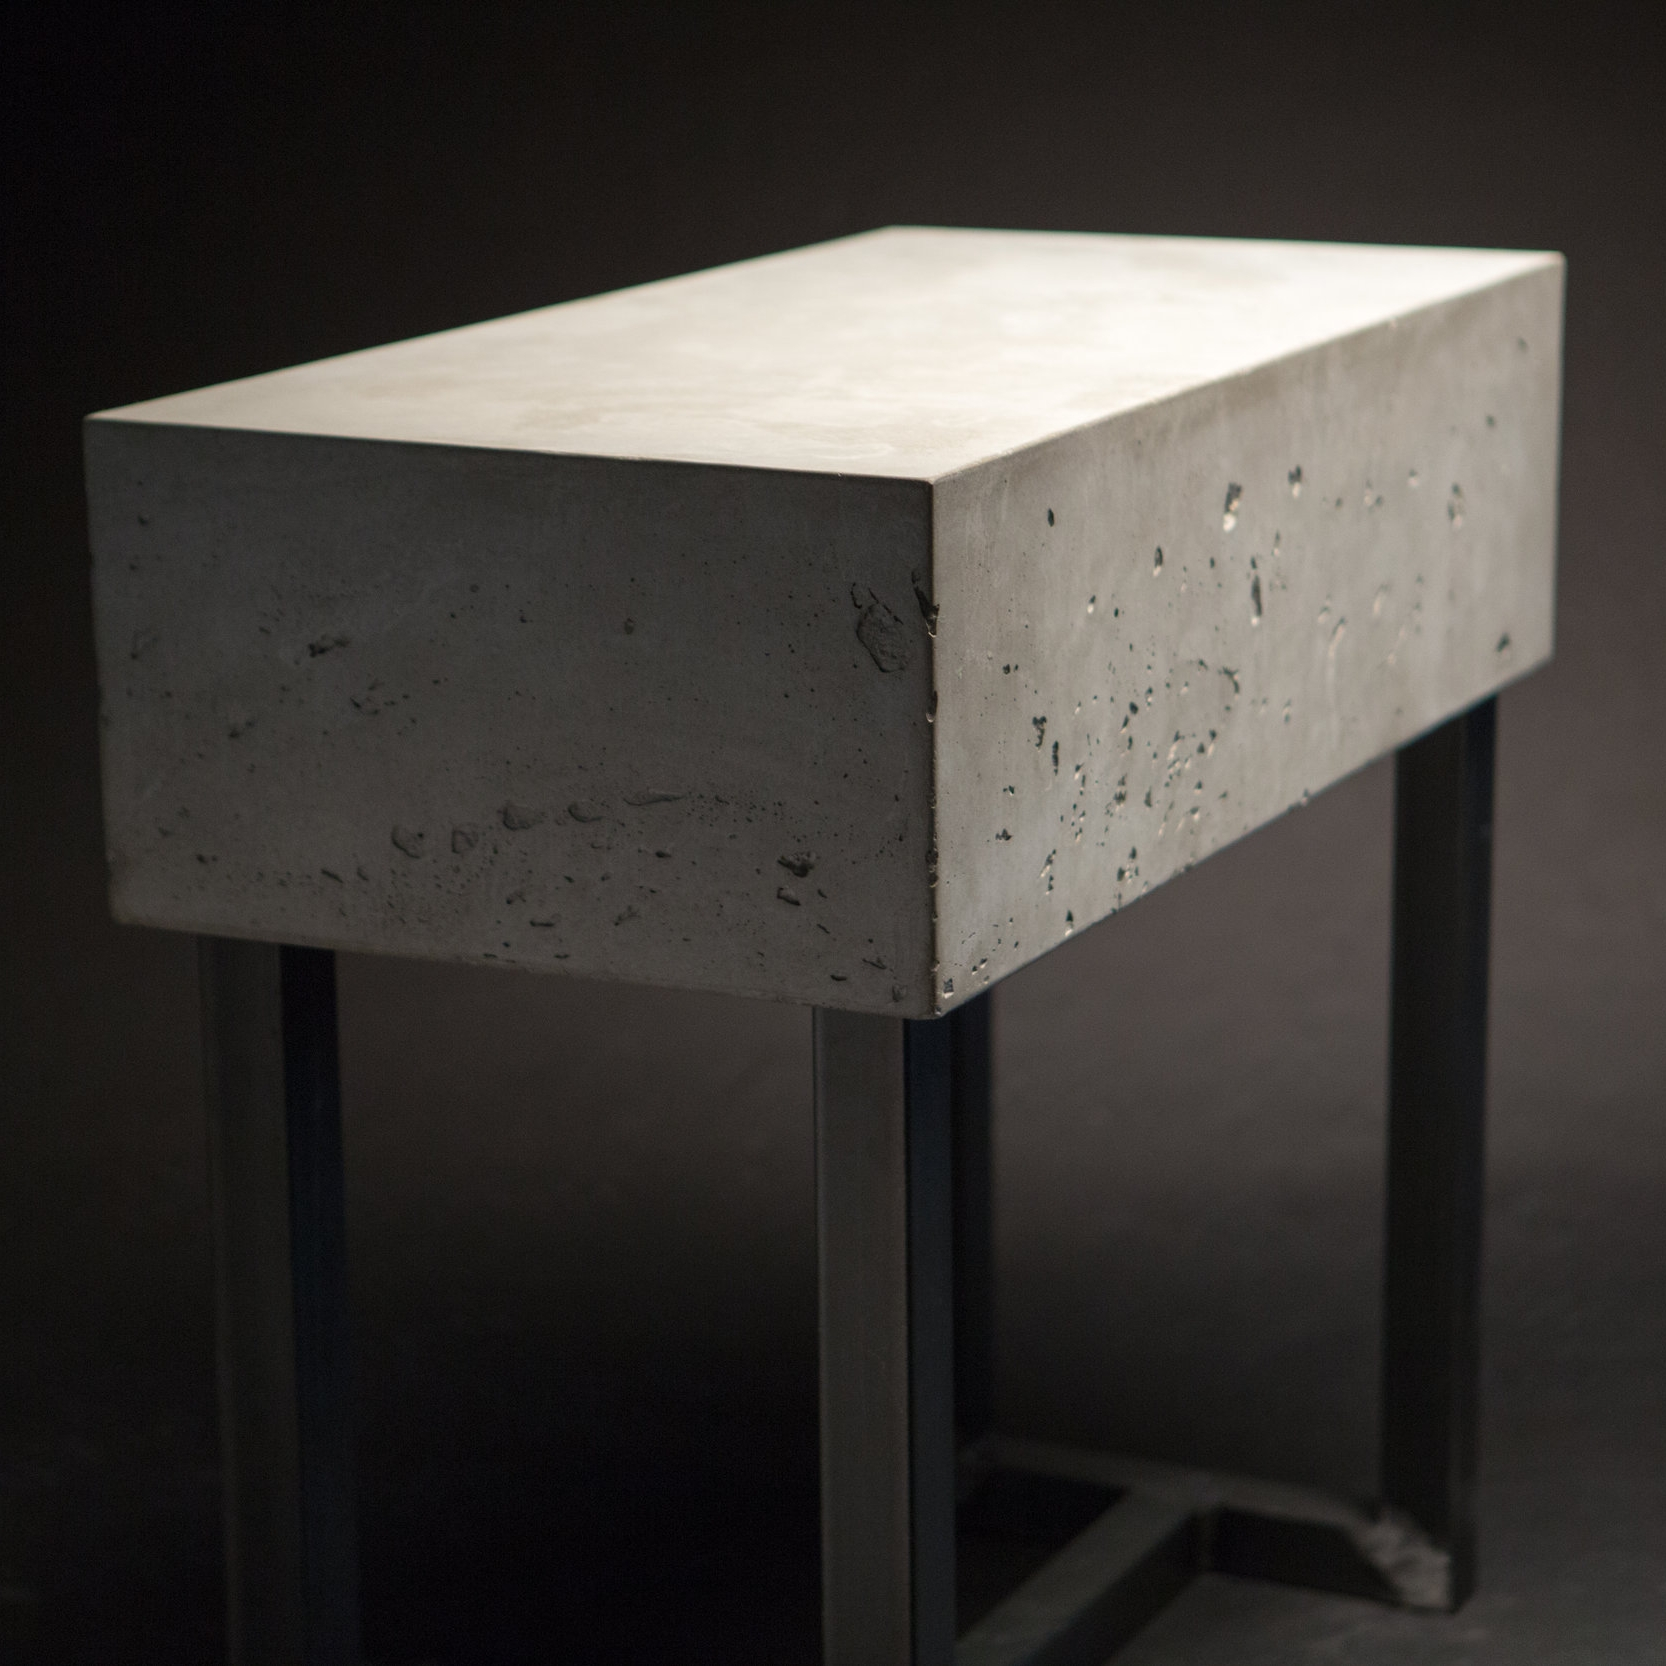 a table with a very thick gray concrete top and a raw welded steel base